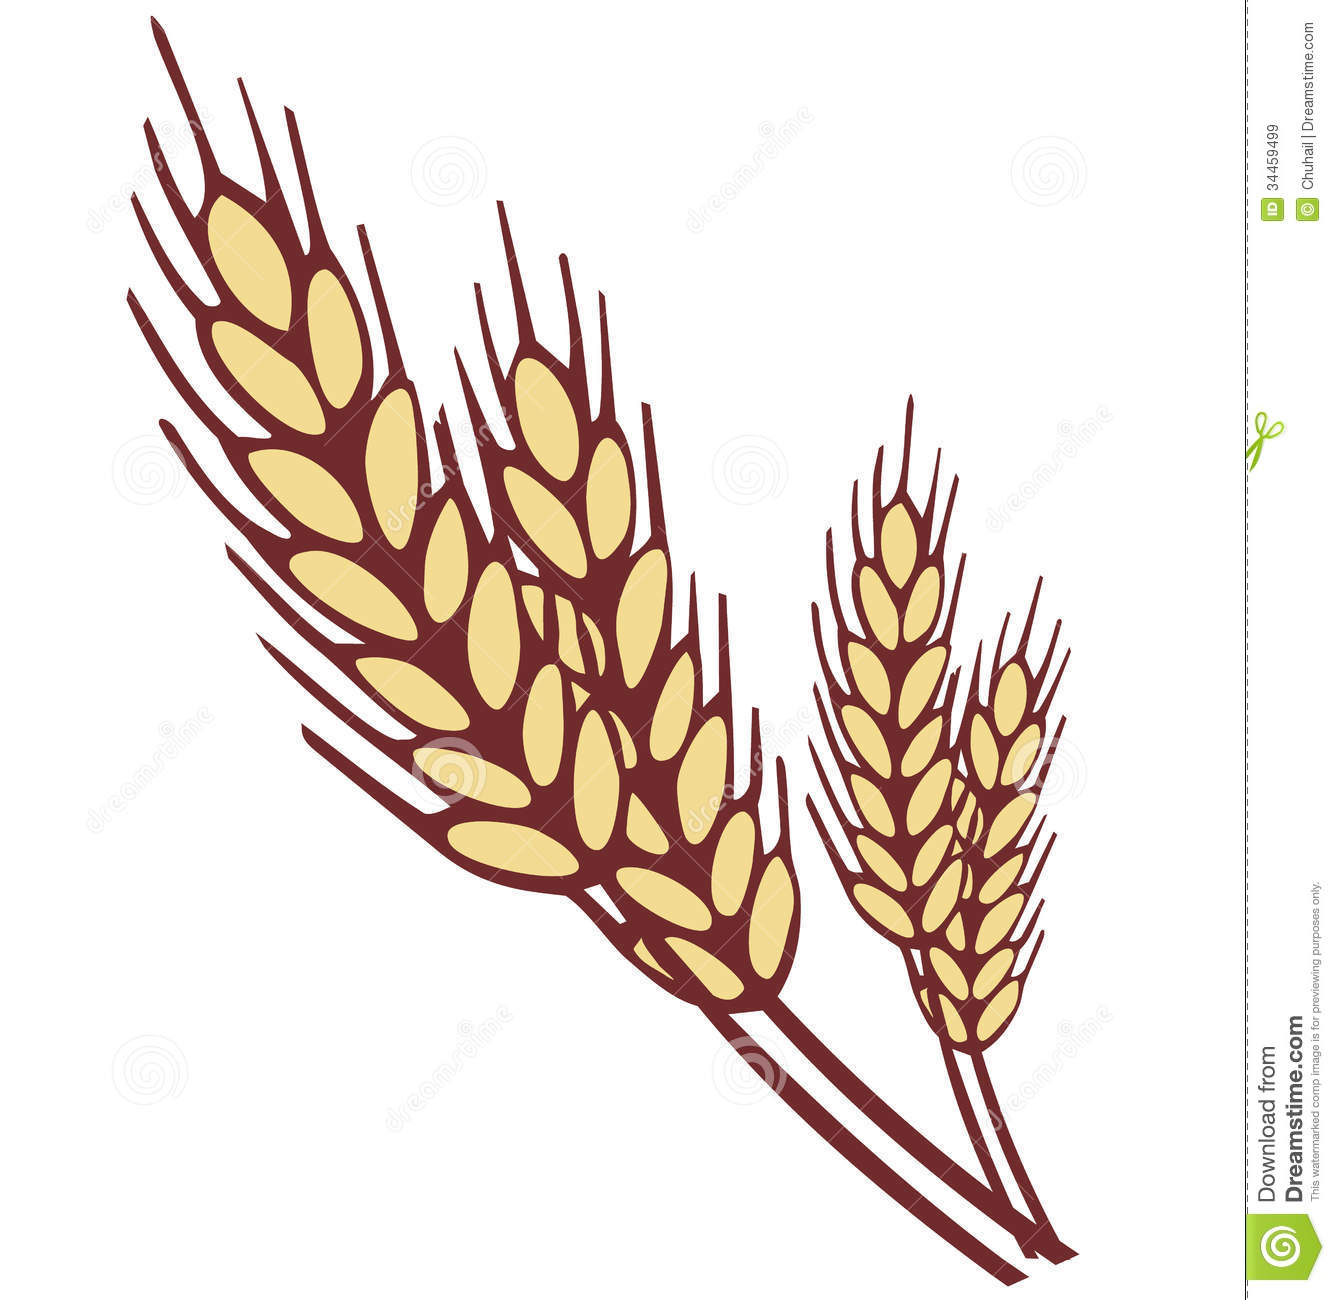 Wheat clipart wheat stock.  clipartlook